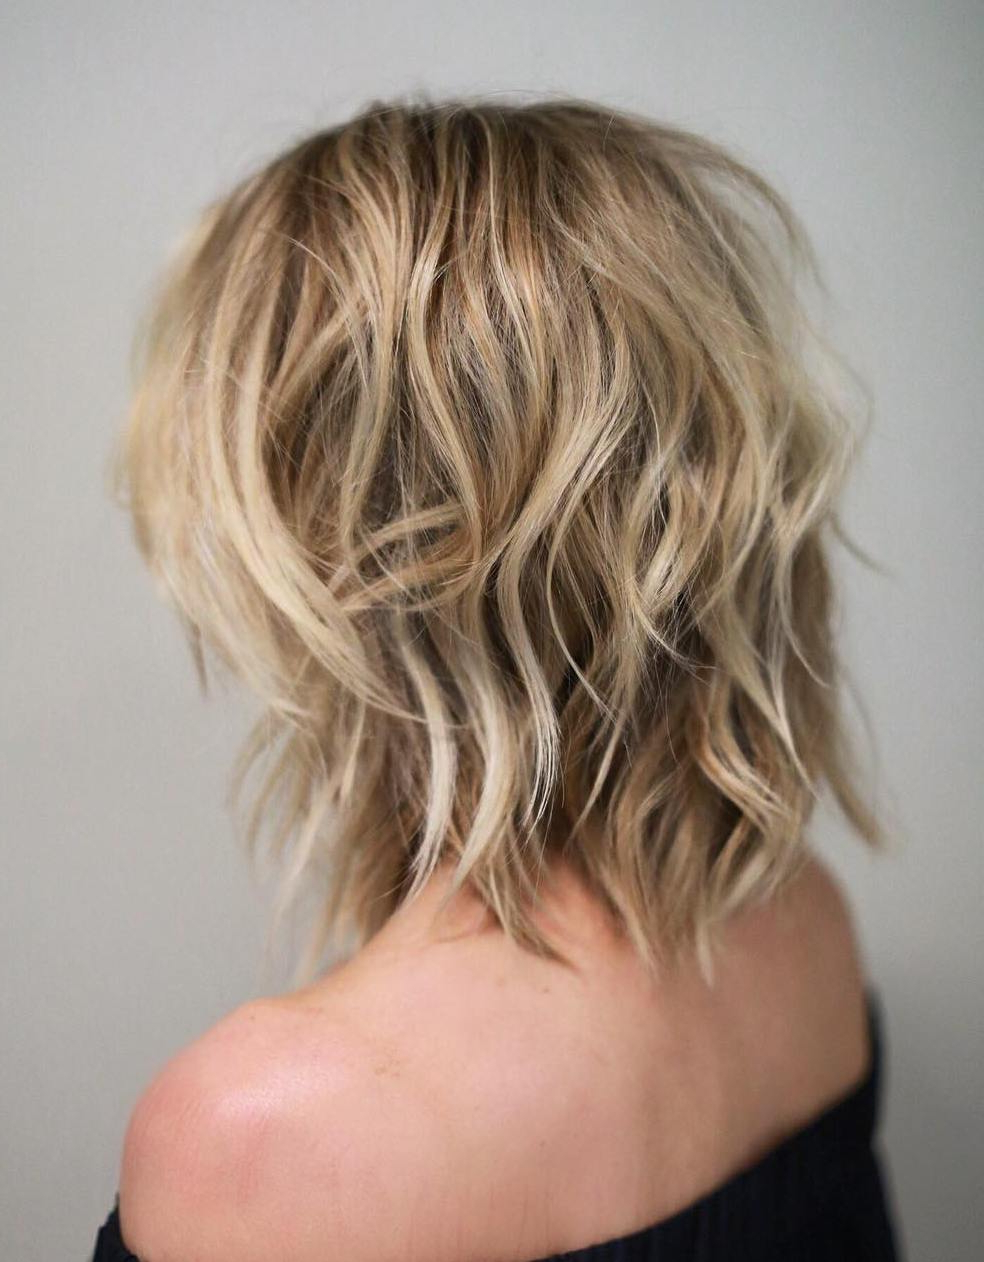 2017 Layered Shaggy Medium Hairstyles With Regard To 50 Best Variations Of A Medium Shag Haircut For Your Distinctive Style (View 4 of 20)